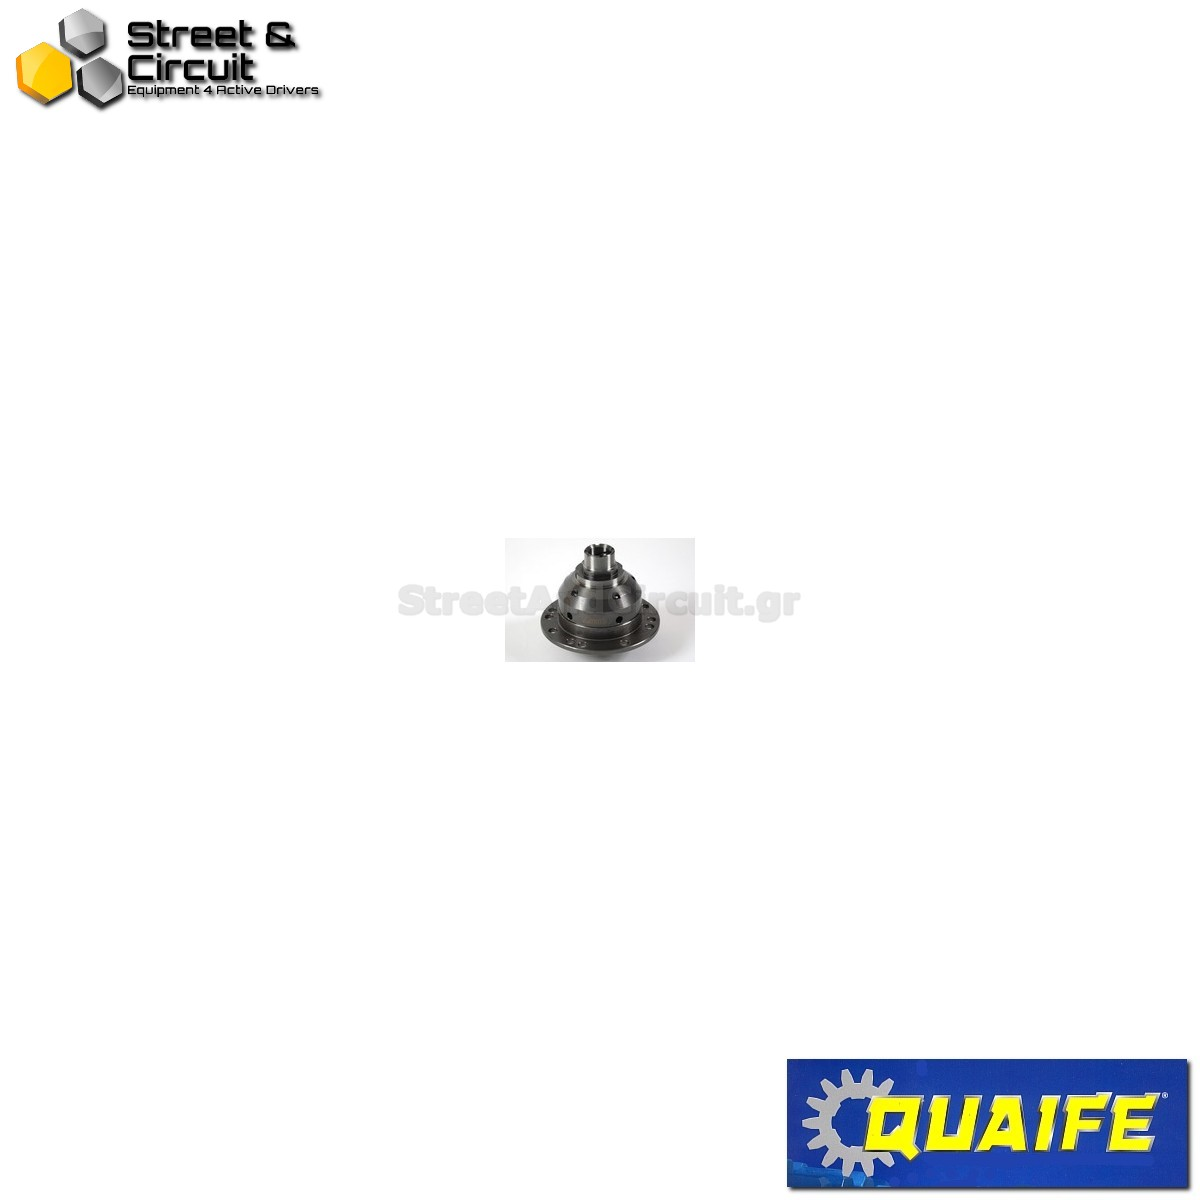 Ford Fiesta BC Quaife ATB Μπλοκέ Διαφορικό/Limited Slip Diff